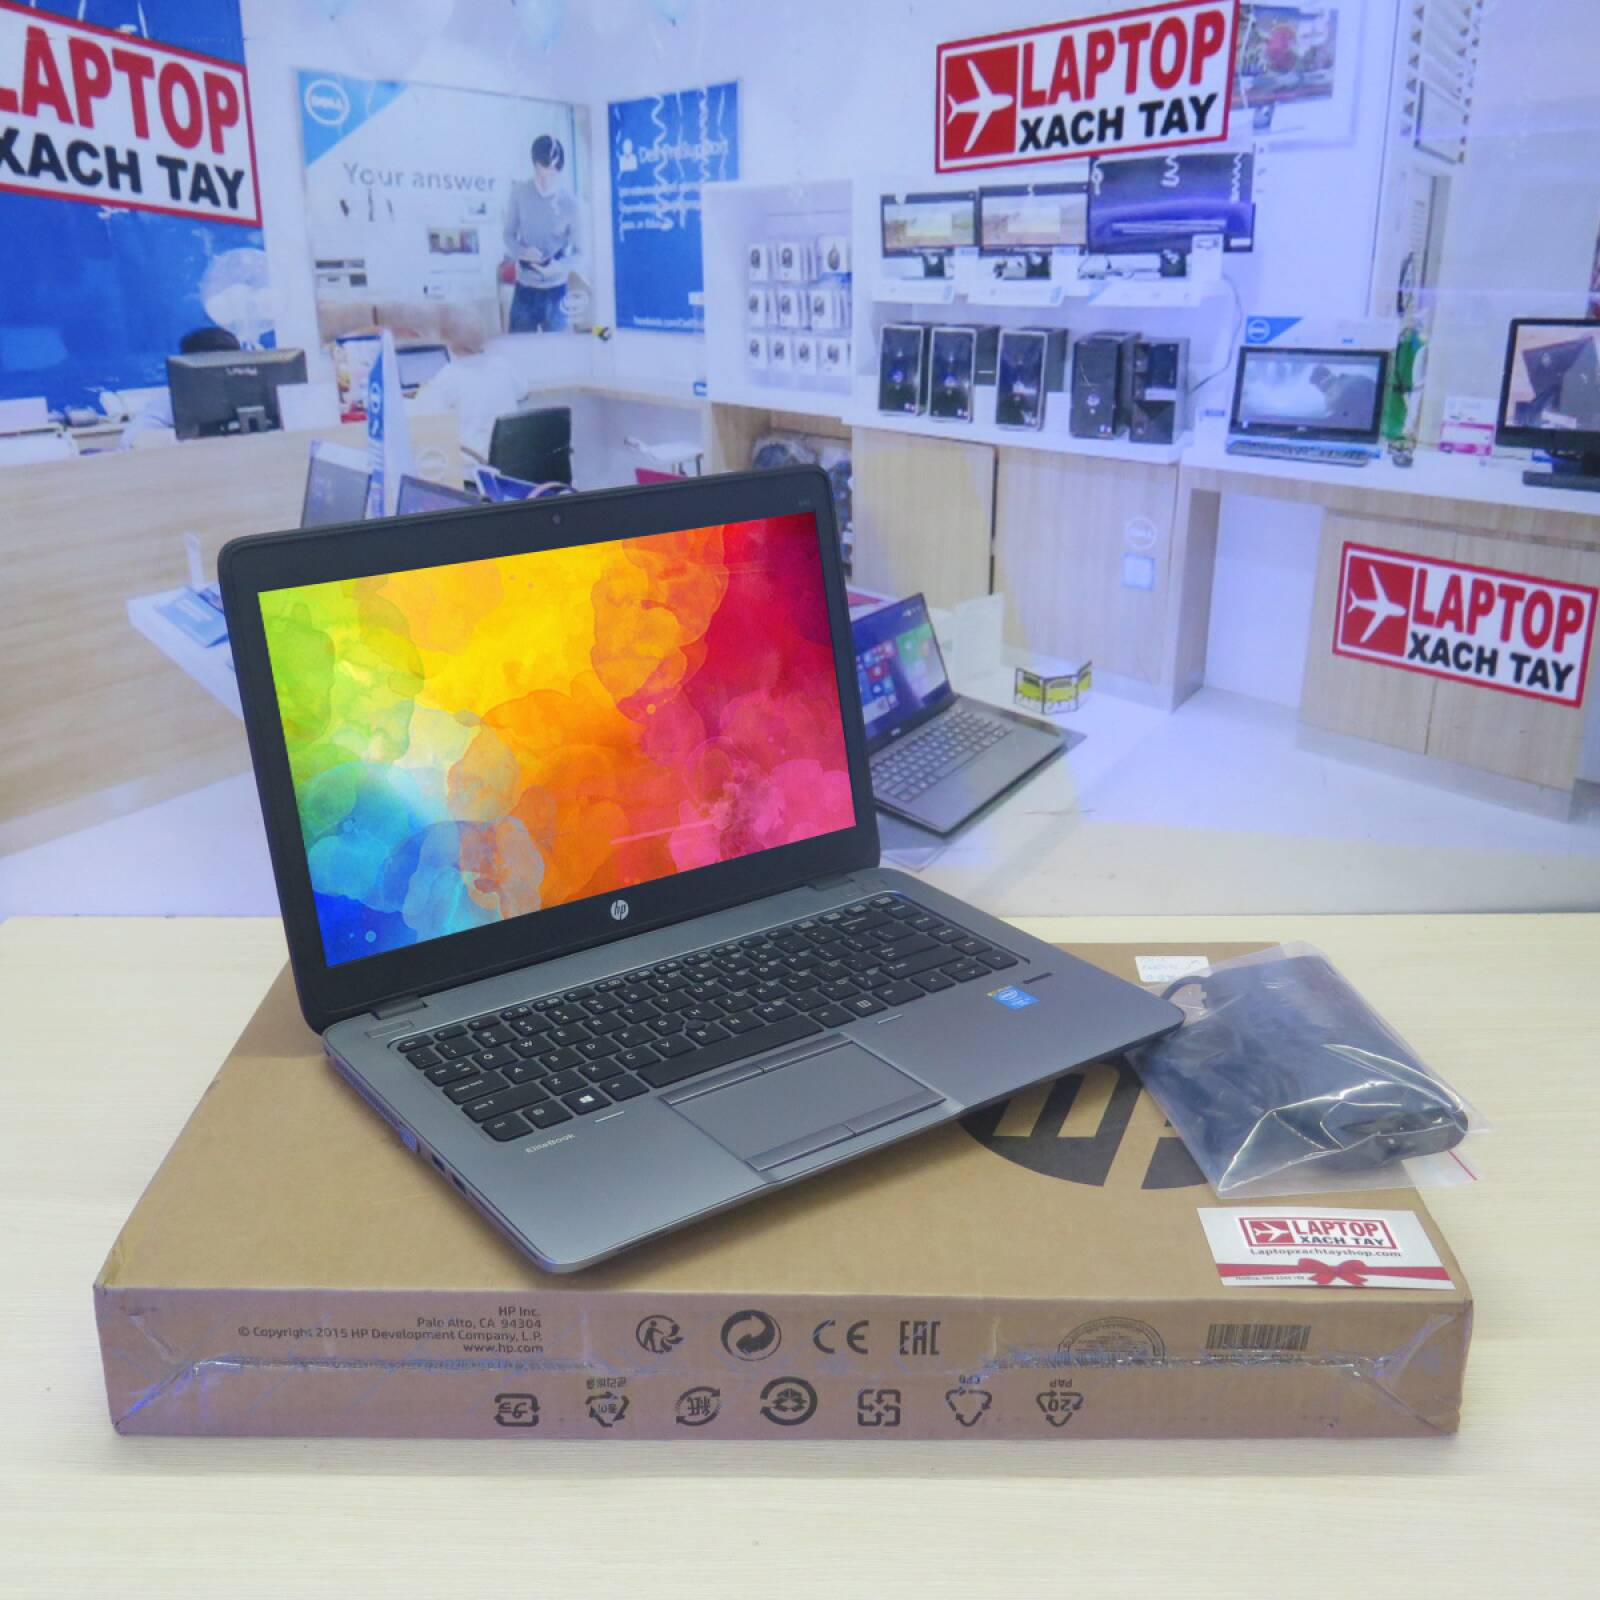 HP Elitebook 840 G2 tại Laptopxachtayshop.com